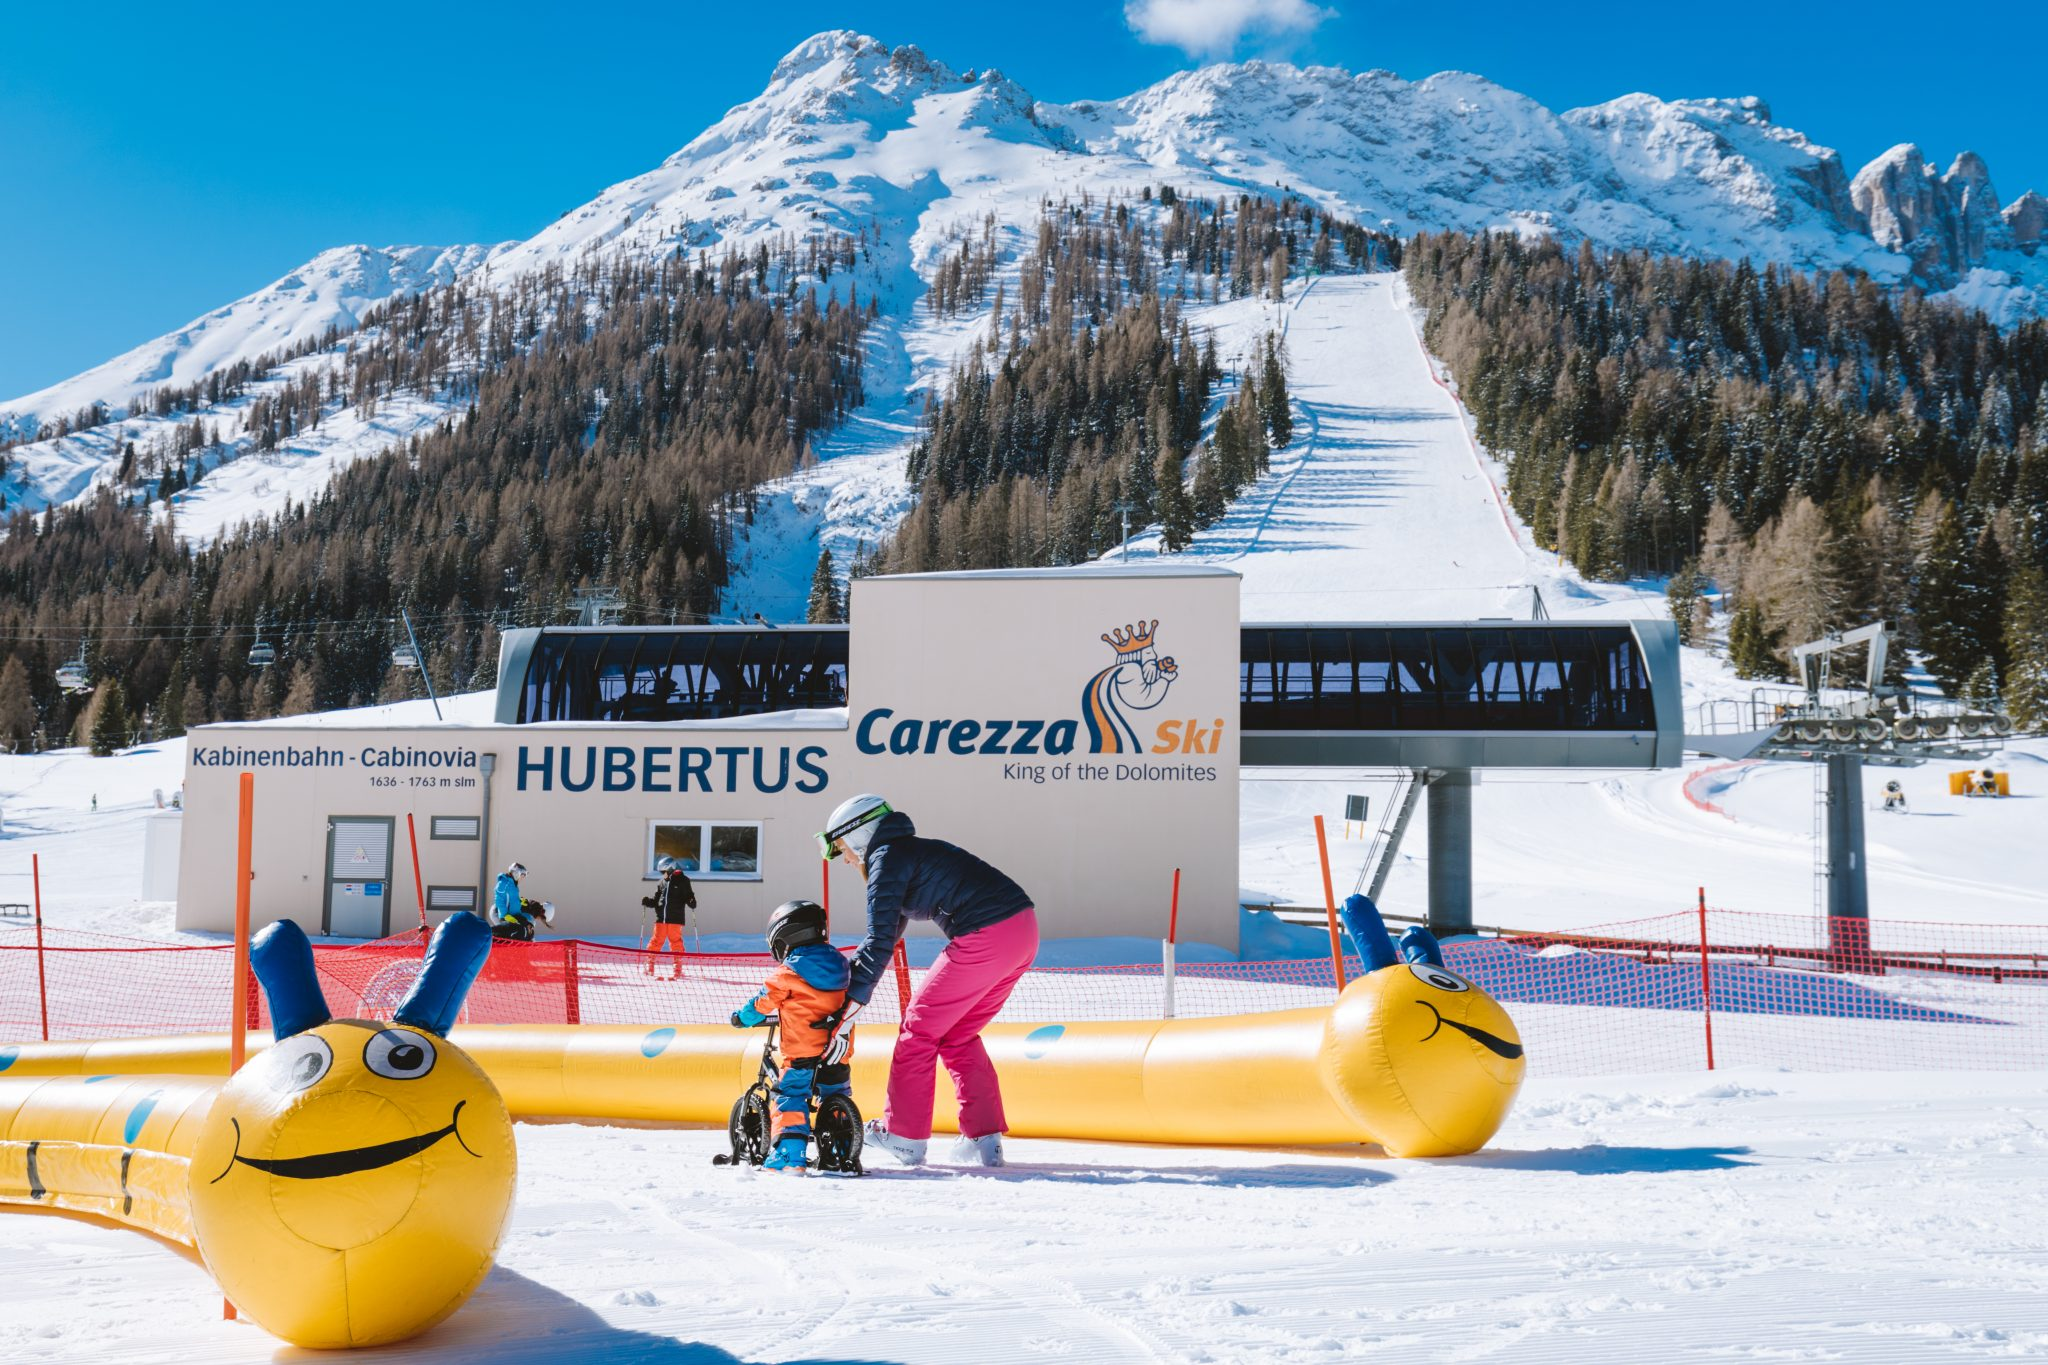 day-long assistance to children during the Dolomites skiing week for kids in Carezza, Dolomites